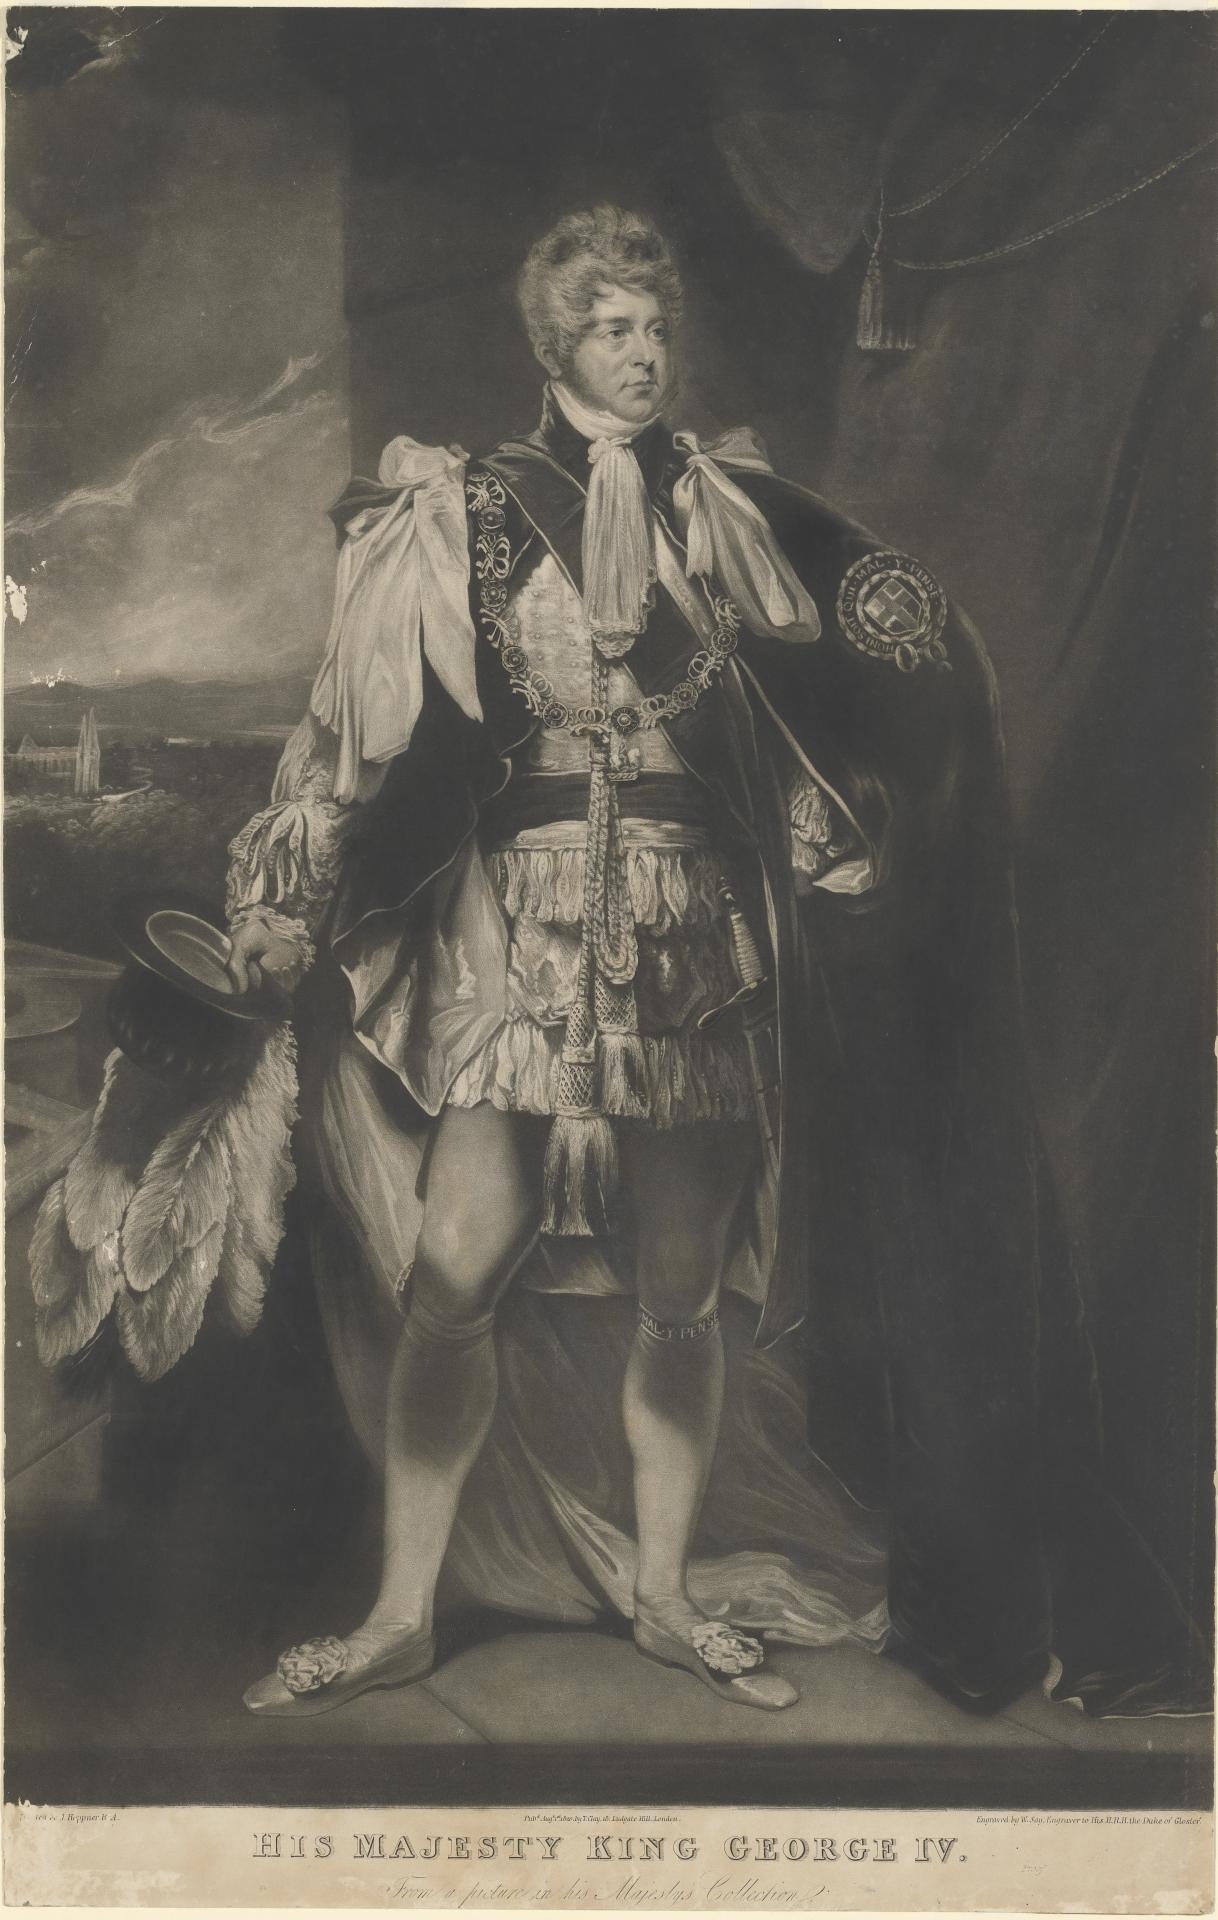 His Majesty King George IV